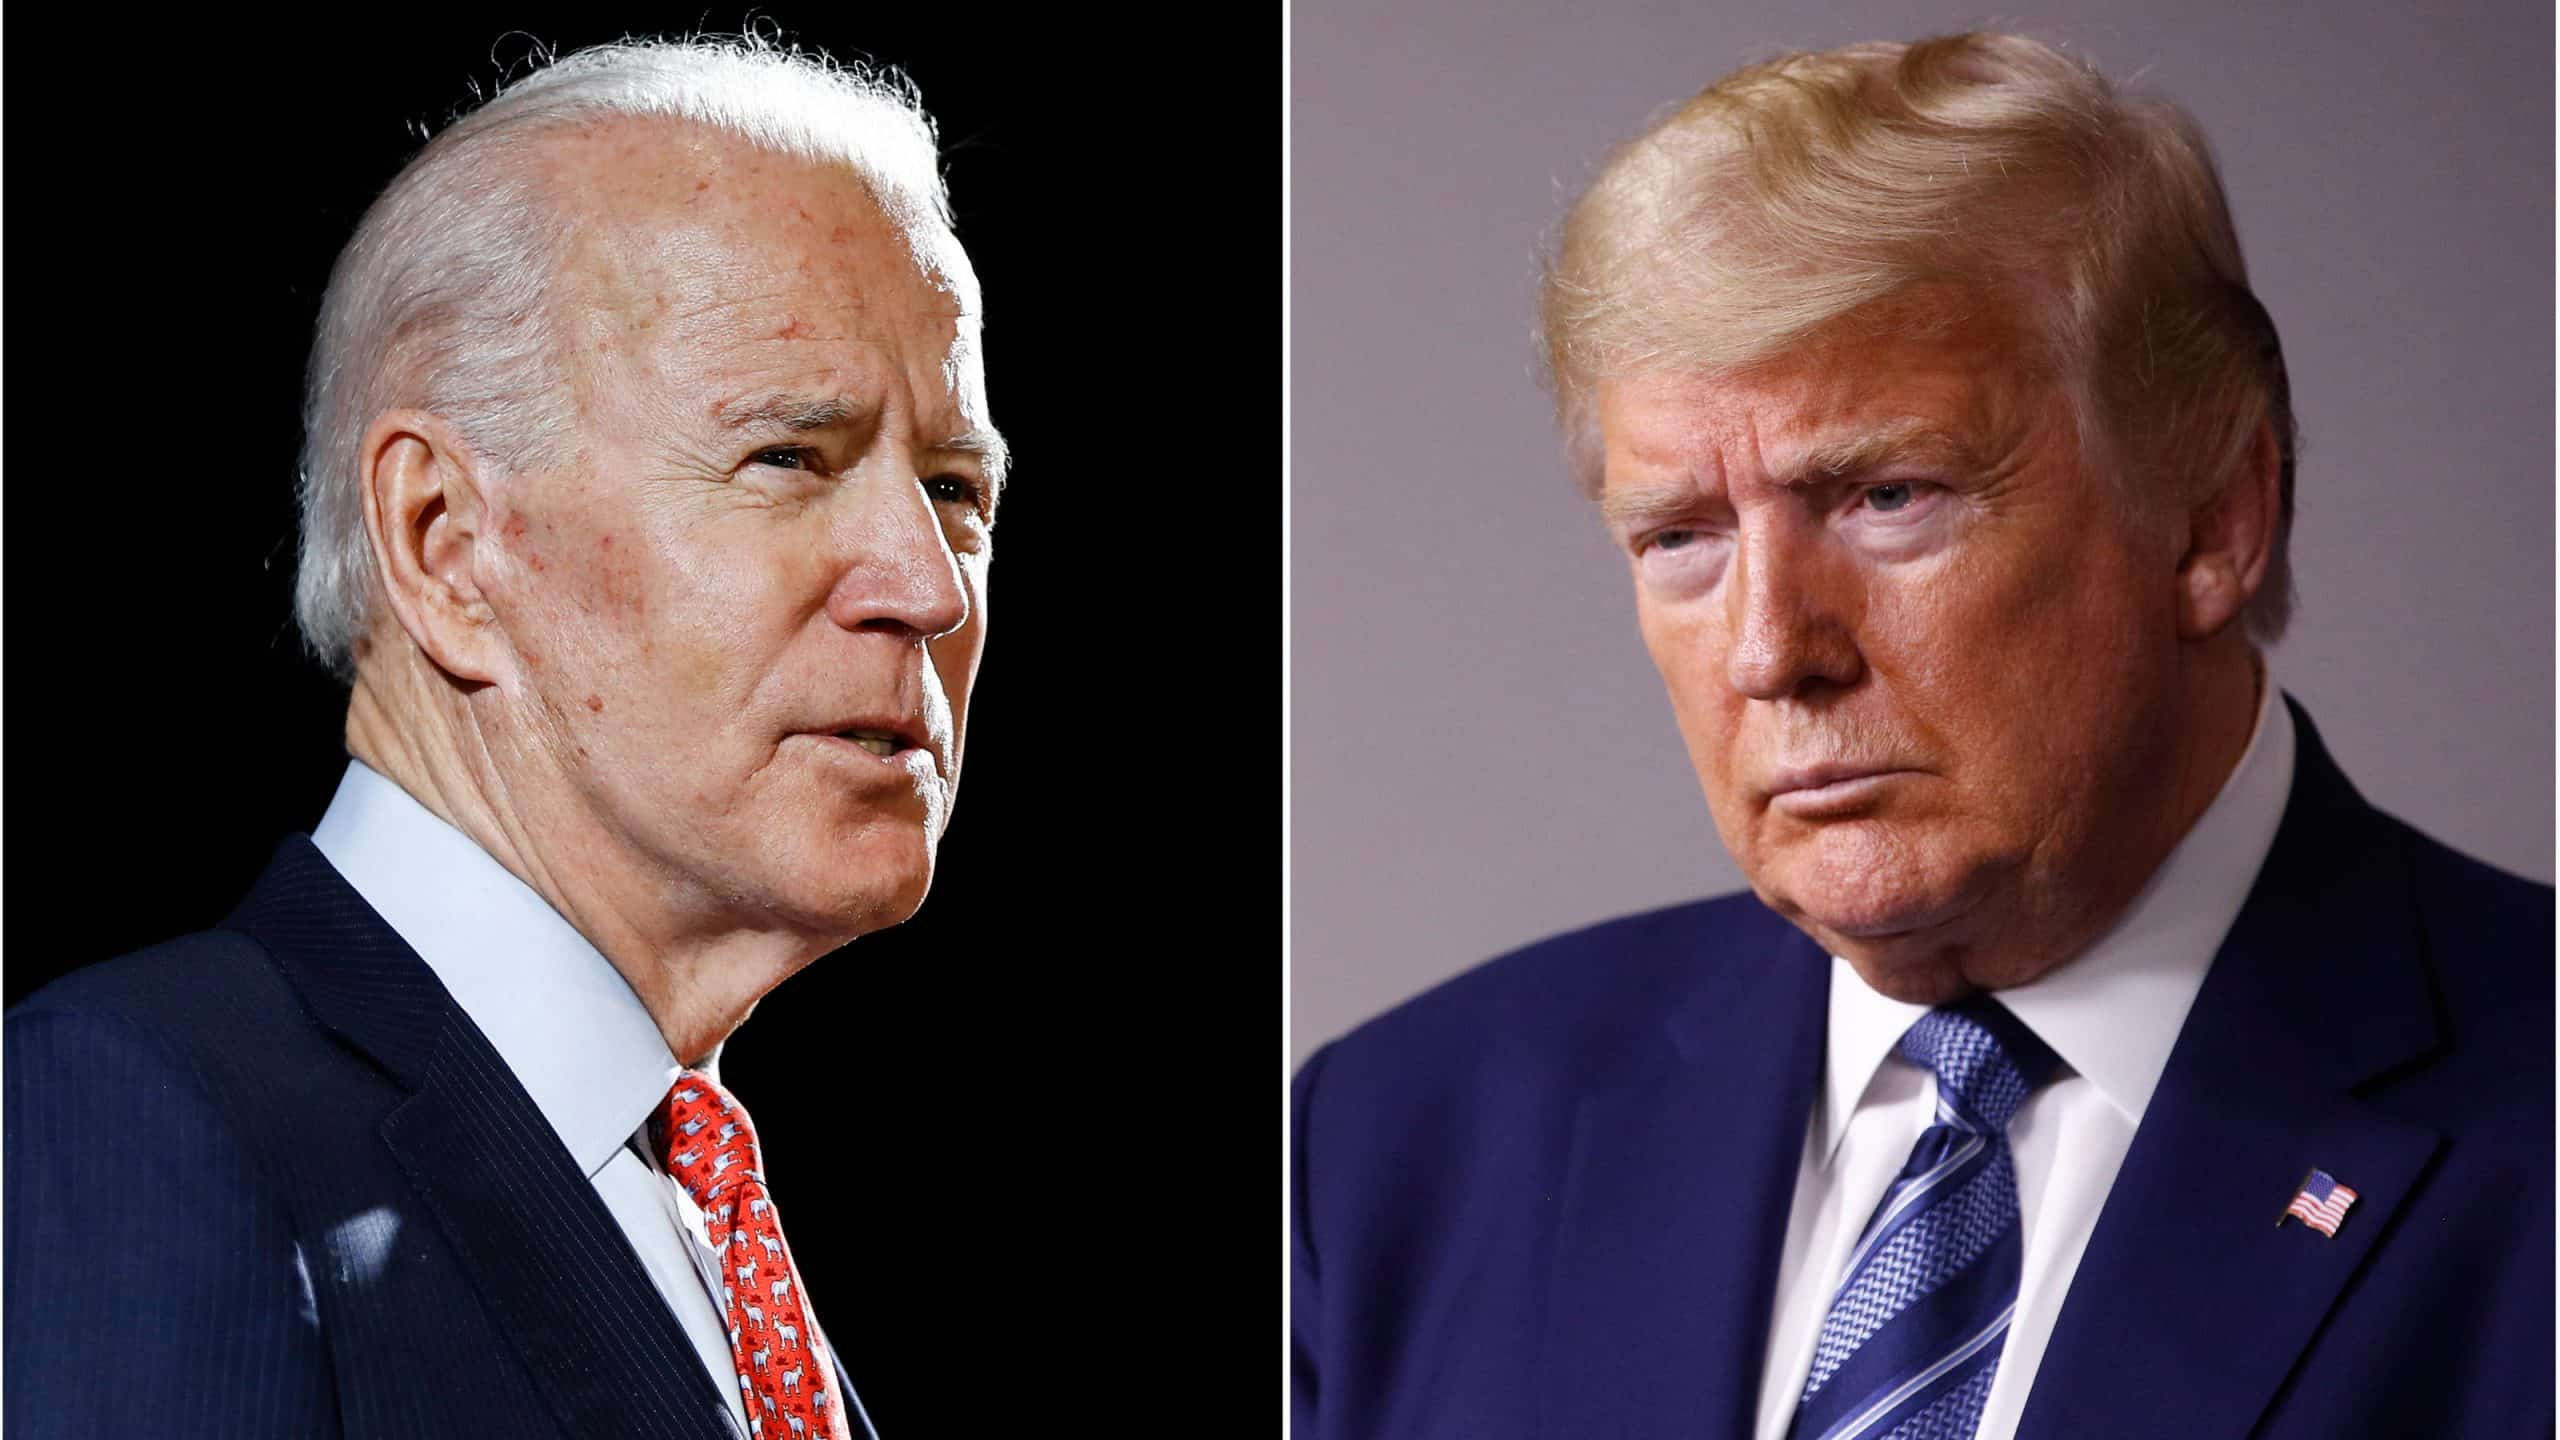 Trump and Biden offer dramatically different visions at dueling town halls 5